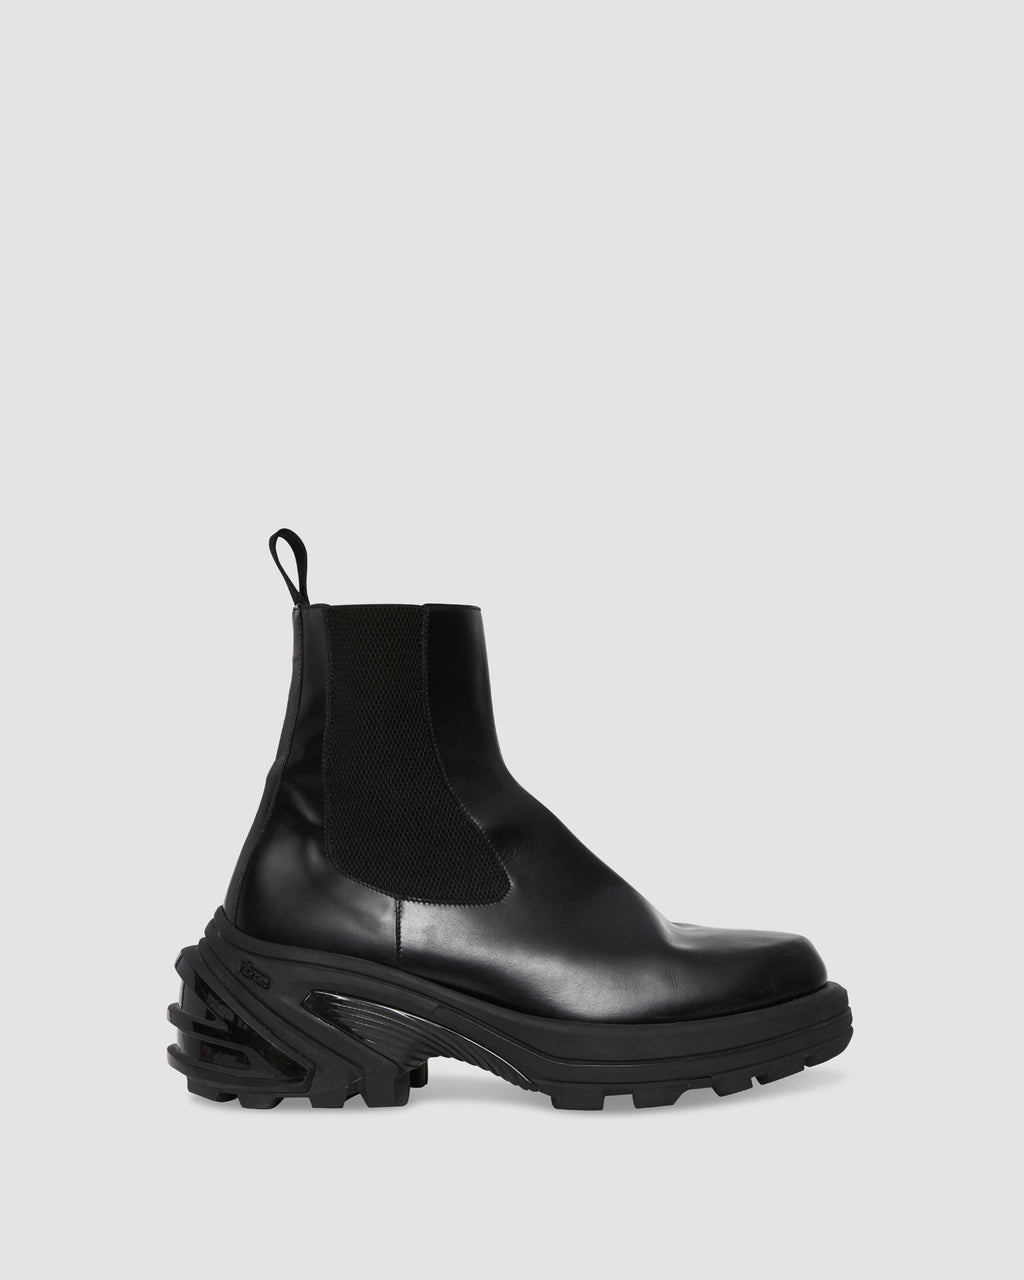 CHELSEA BOOTS WITH REMOVABLE VIBRAM SOLE PREORDER